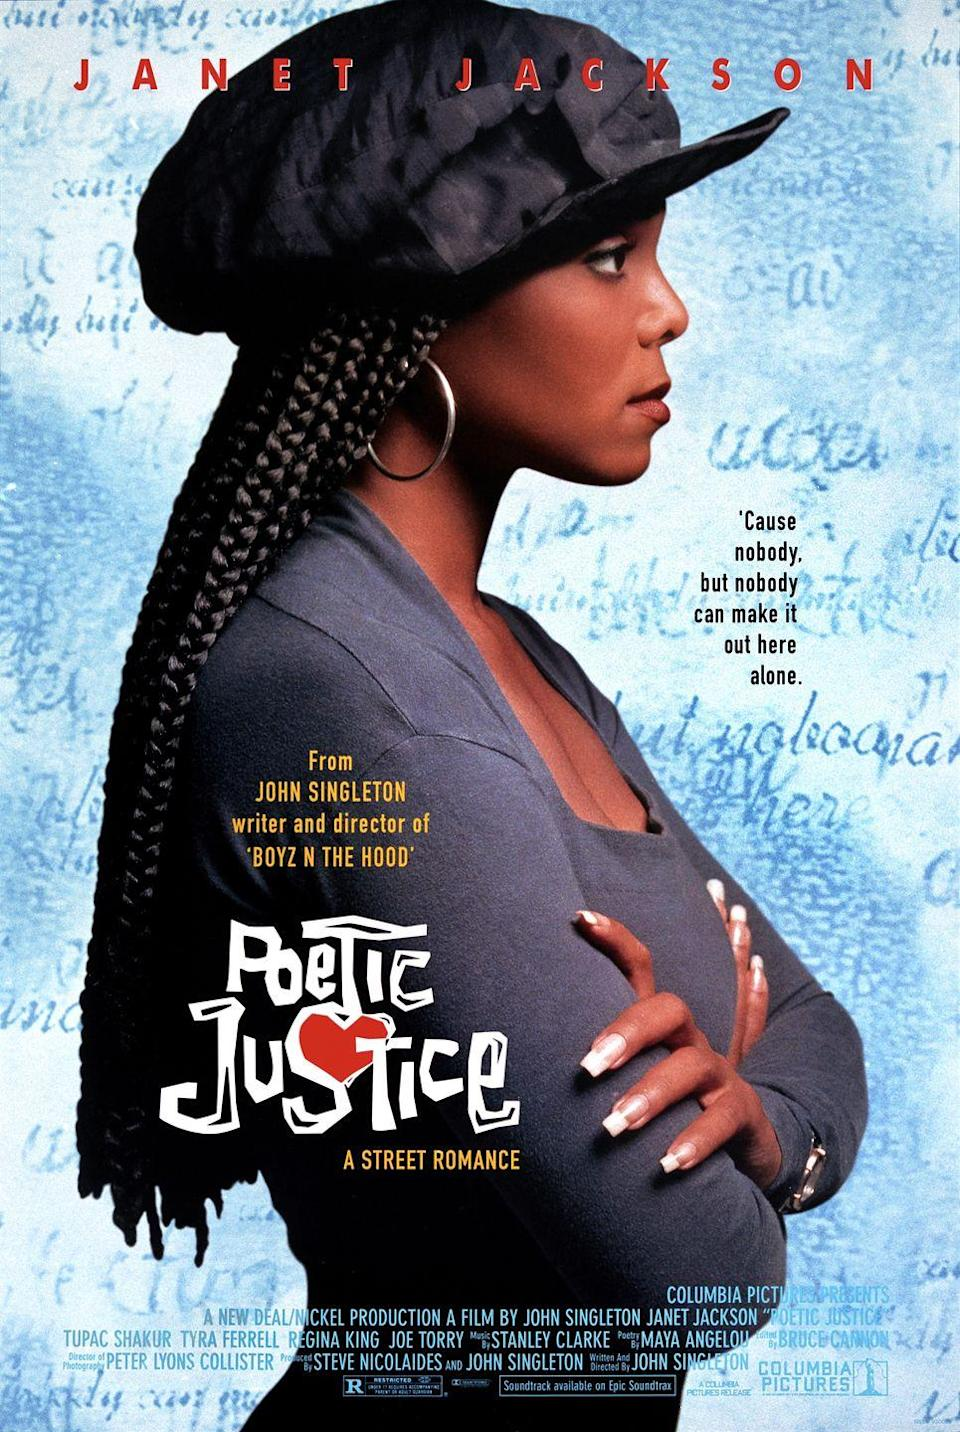 "<p>As a result of her style in the starring role in 1993's <em><a href=""https://www.amazon.com/Poetic-Justice-Regina-King/dp/0767821955?tag=syn-yahoo-20&ascsubtag=%5Bartid%7C10055.g.22675797%5Bsrc%7Cyahoo-us"" rel=""nofollow noopener"" target=""_blank"" data-ylk=""slk:Poetic Justice"" class=""link rapid-noclick-resp"">Poetic Justice</a></em>, Janet Jackson inspired women to wear their hair in <a href=""https://www.goodhousekeeping.com/beauty/hair/tips/g1894/celebrity-hairstyles-braids/"" rel=""nofollow noopener"" target=""_blank"" data-ylk=""slk:long box braids"" class=""link rapid-noclick-resp"">long box braids</a>.</p>"